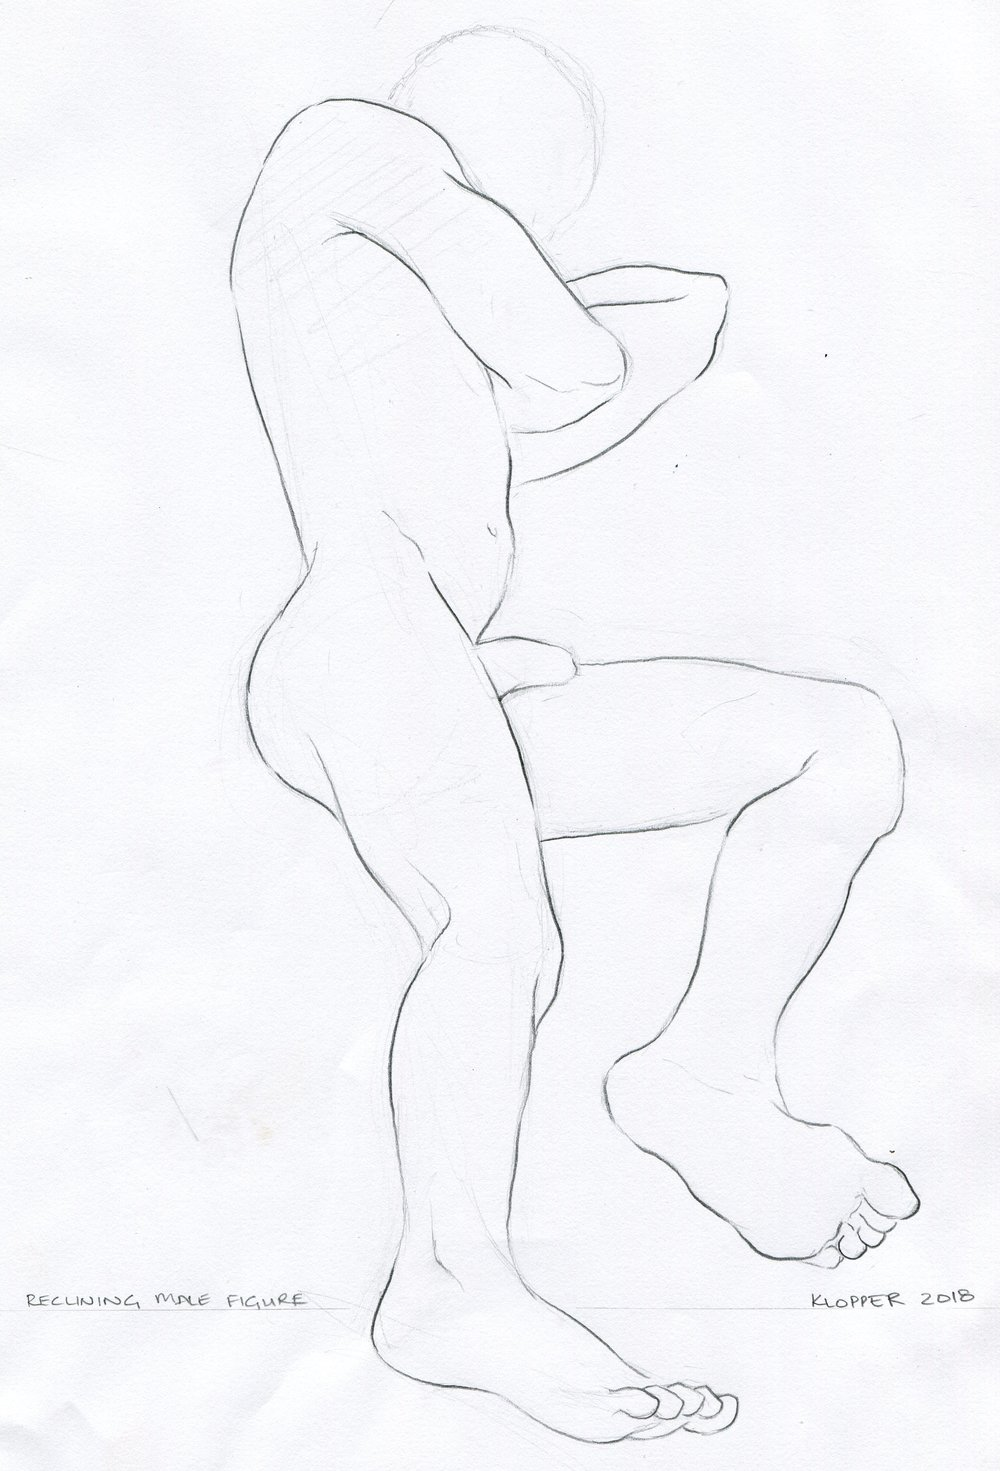 33A  Rory Klopper  Reclining male figure  pencil on paper